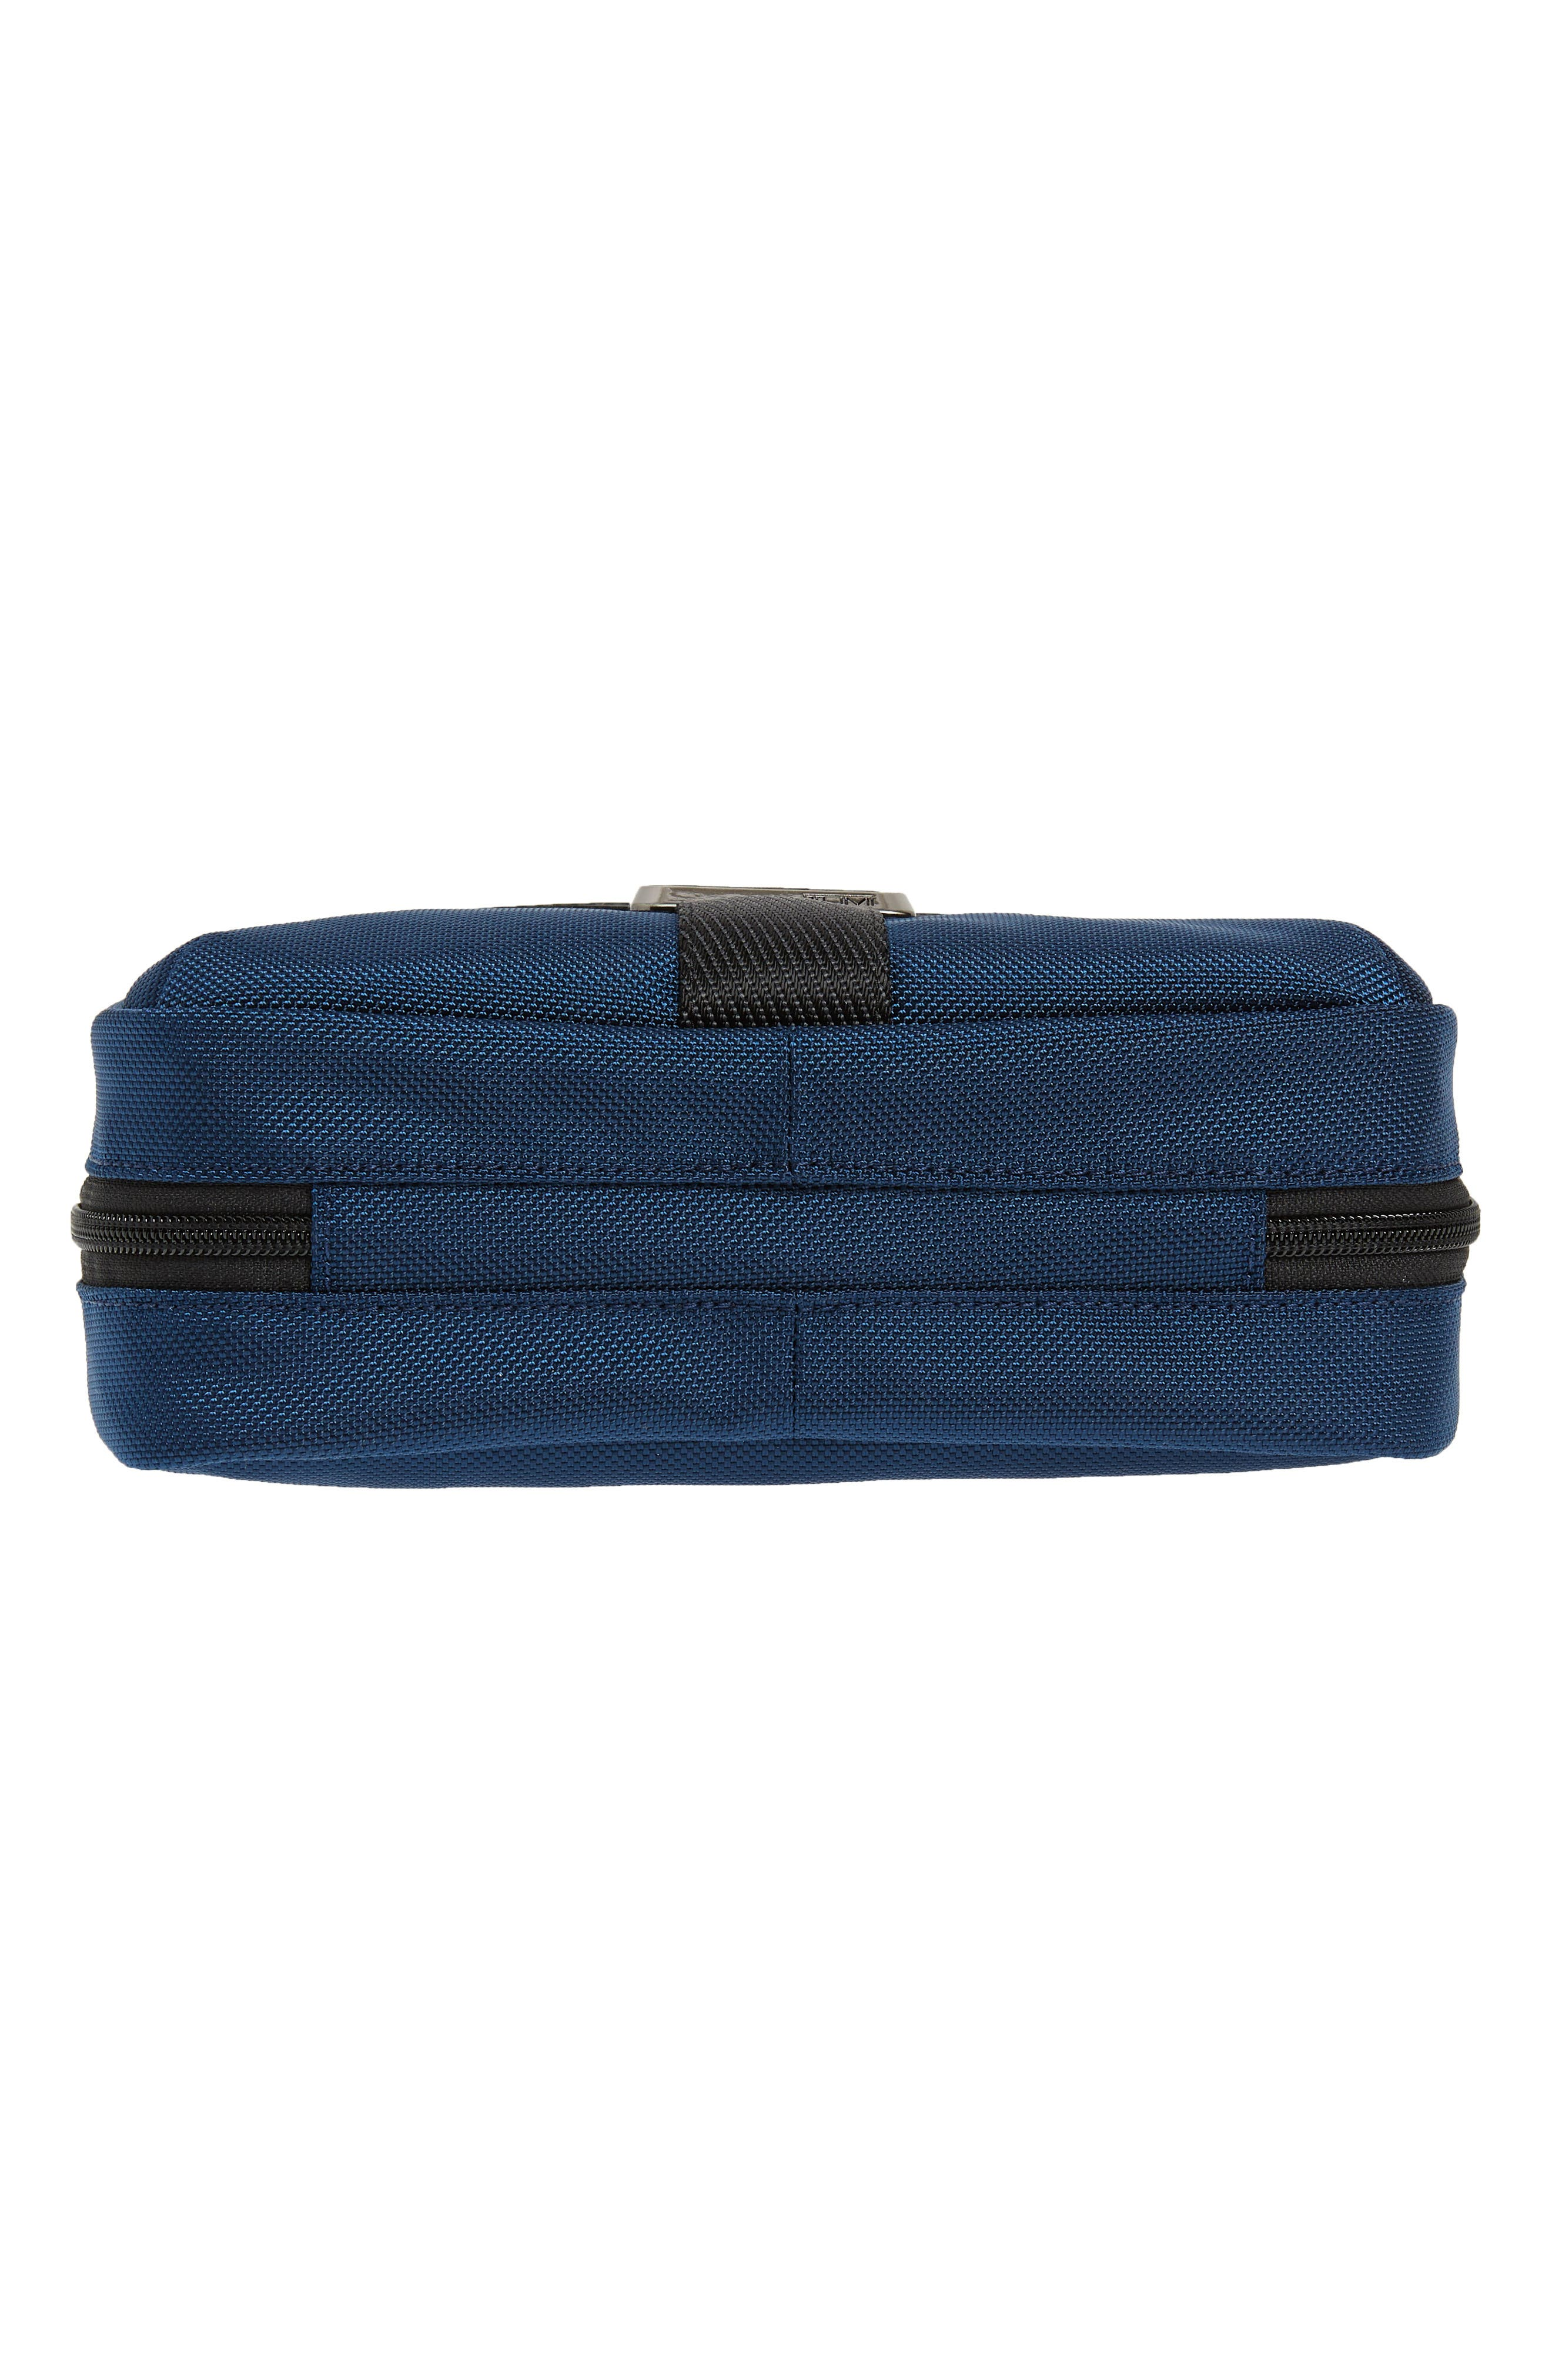 TUMI,                             Alpha Bravo - Reno Travel Kit,                             Alternate thumbnail 5, color,                             415